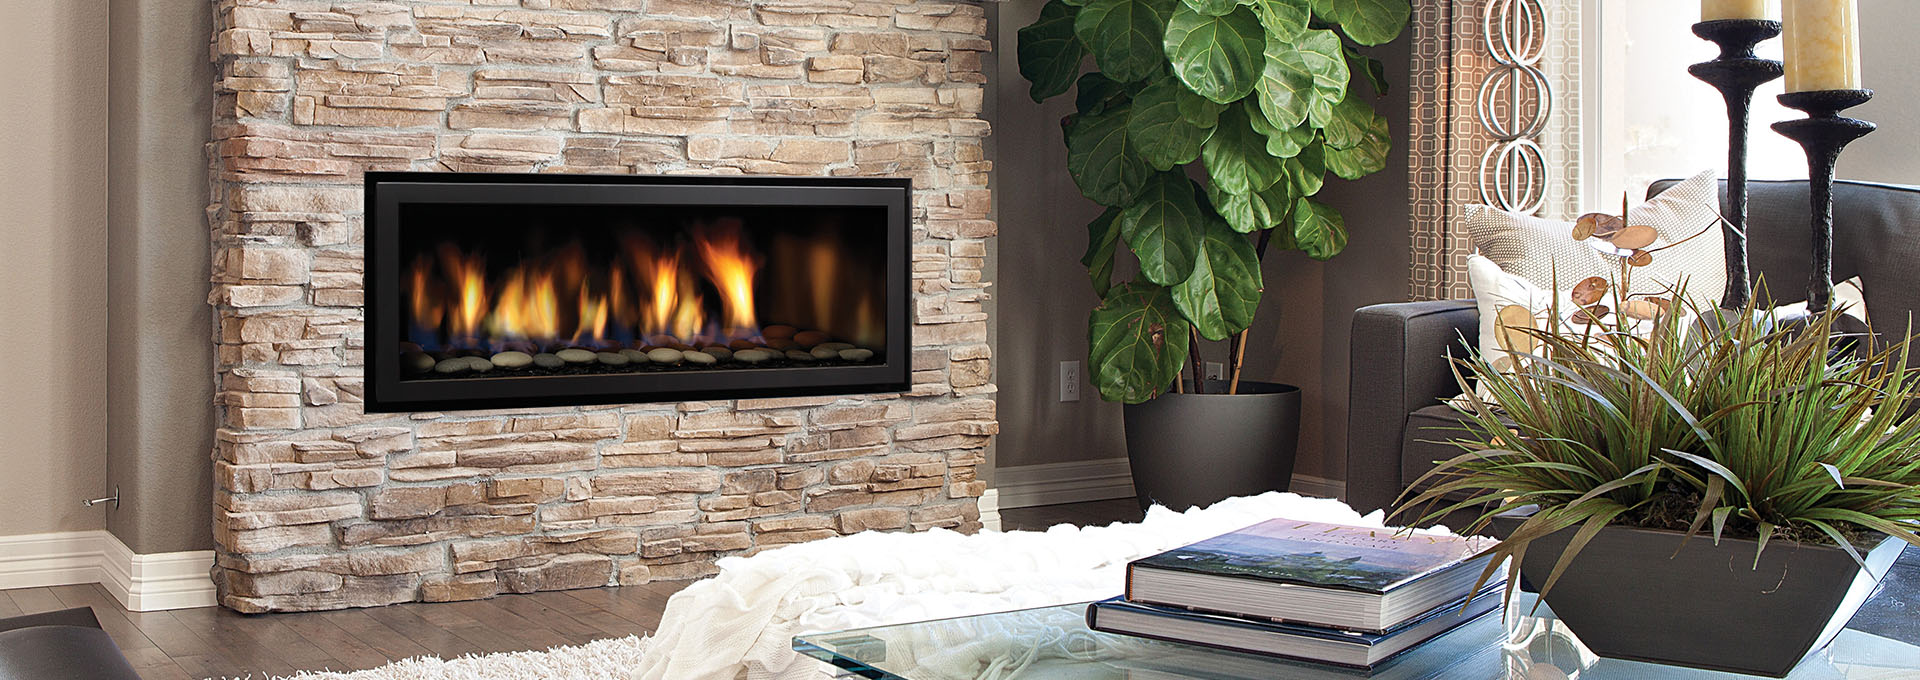 Regency horizon hz40e contemporary gas fireplace toronto for Modern gas fireplace price